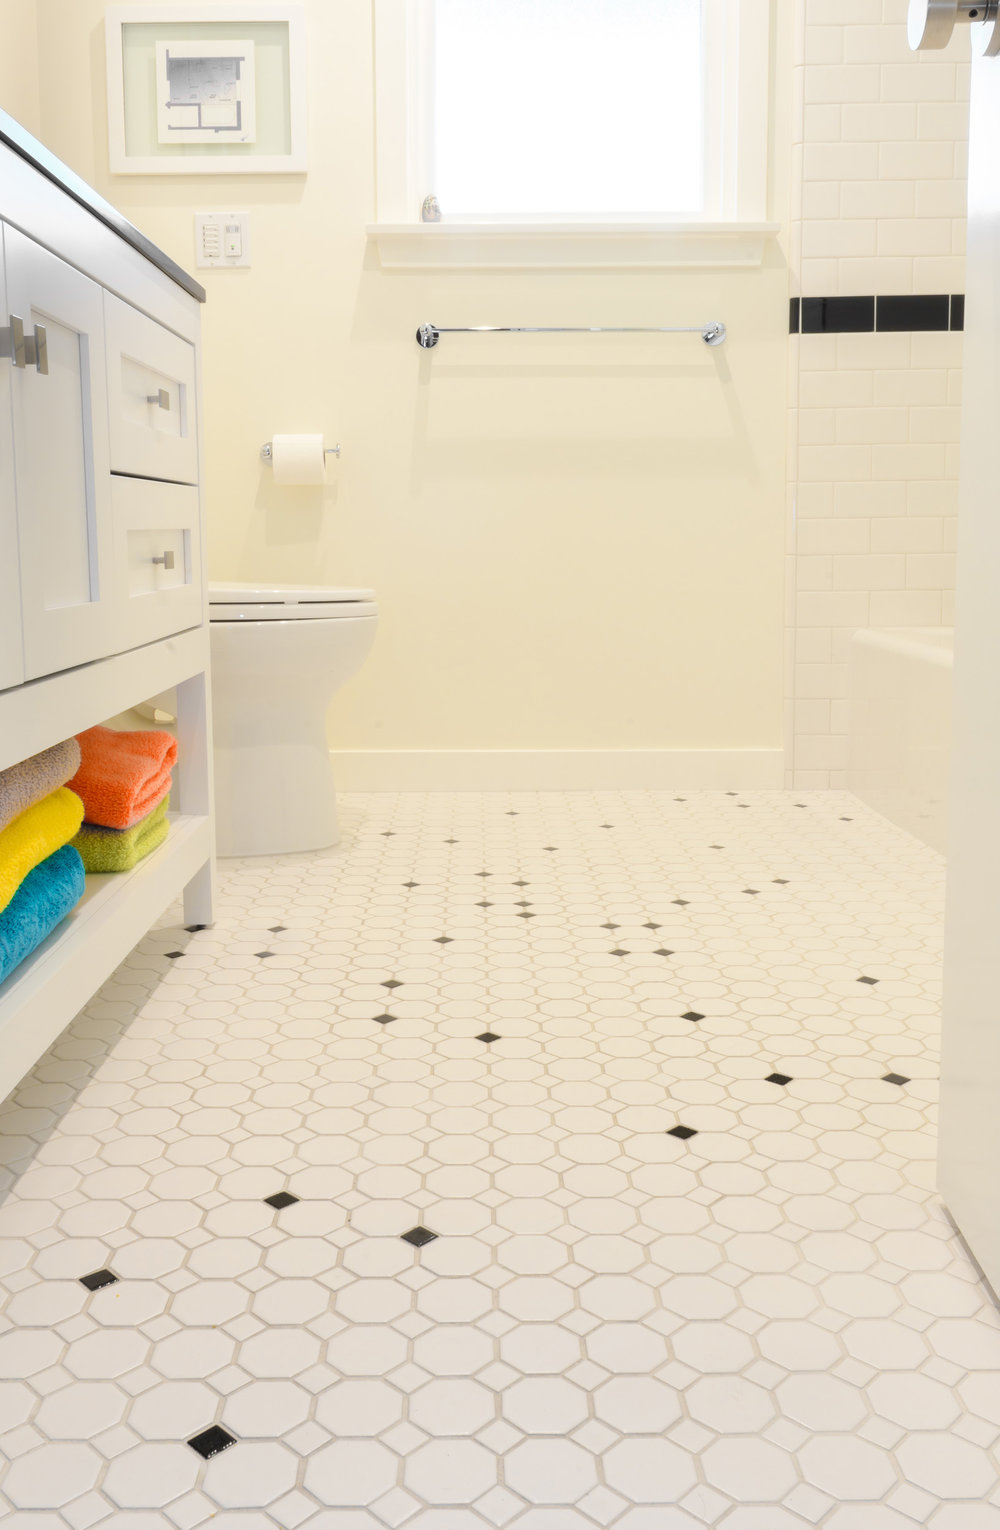 White octagon tile floor with black accent tile dots set in a pattern to mimic the constellations in the Northern Sky